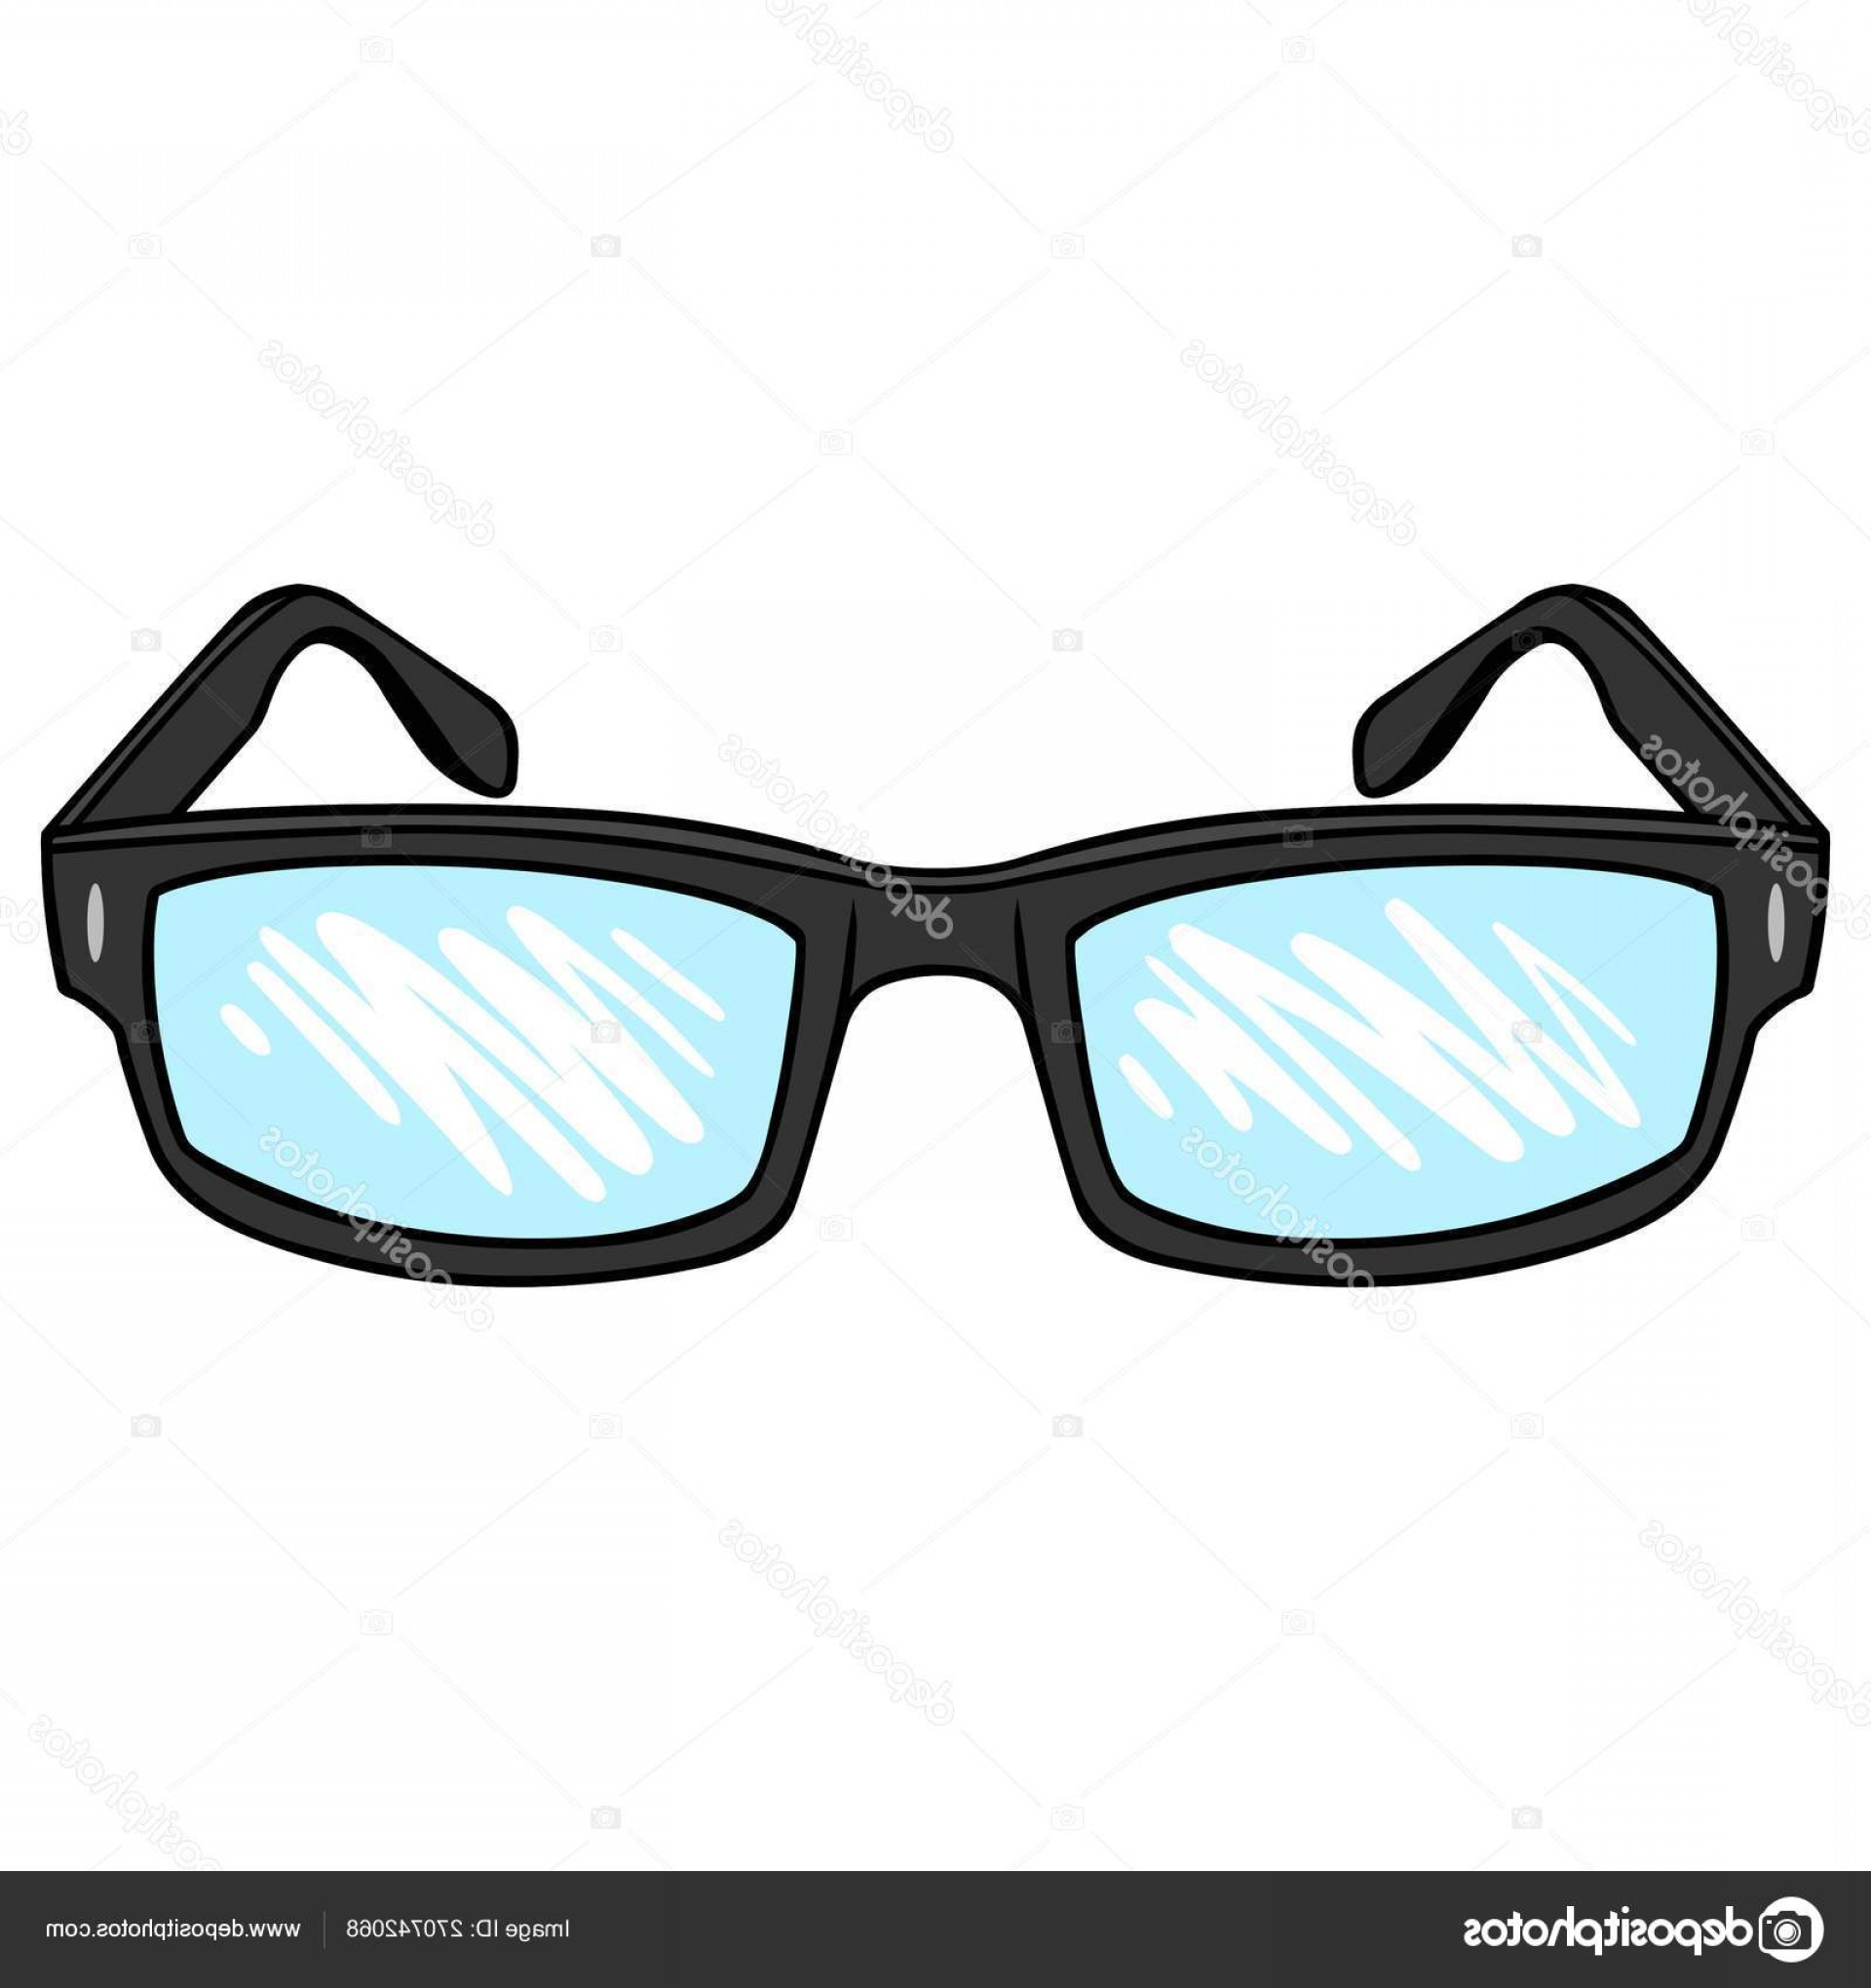 Reading Glasses For Men Vector: Stock Illustration Reading Glasses Cartoon Illustration Pair